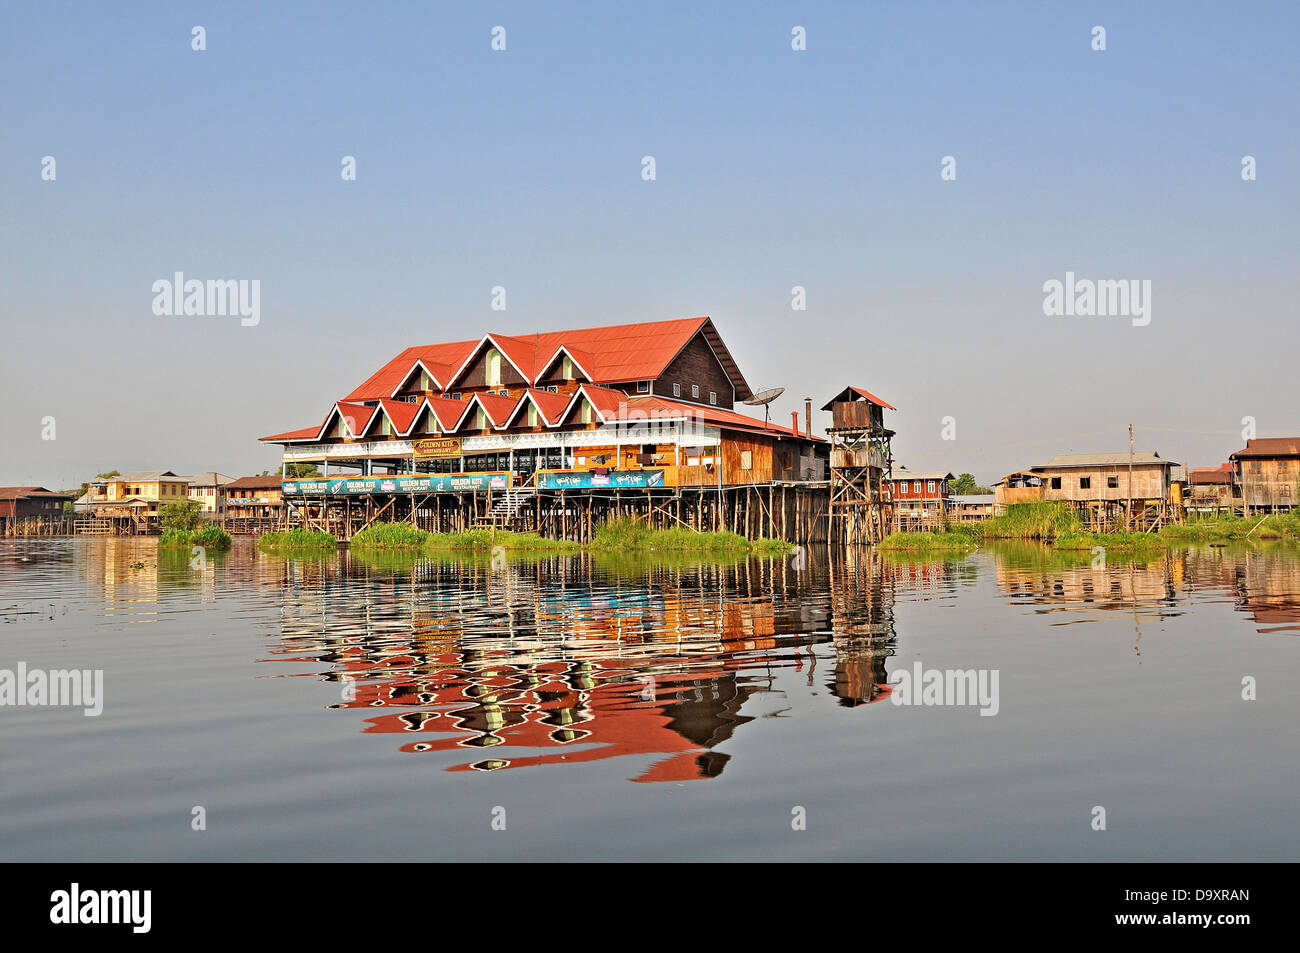 Golden Kite restaurant Inle lake Myanmar - Stock Image